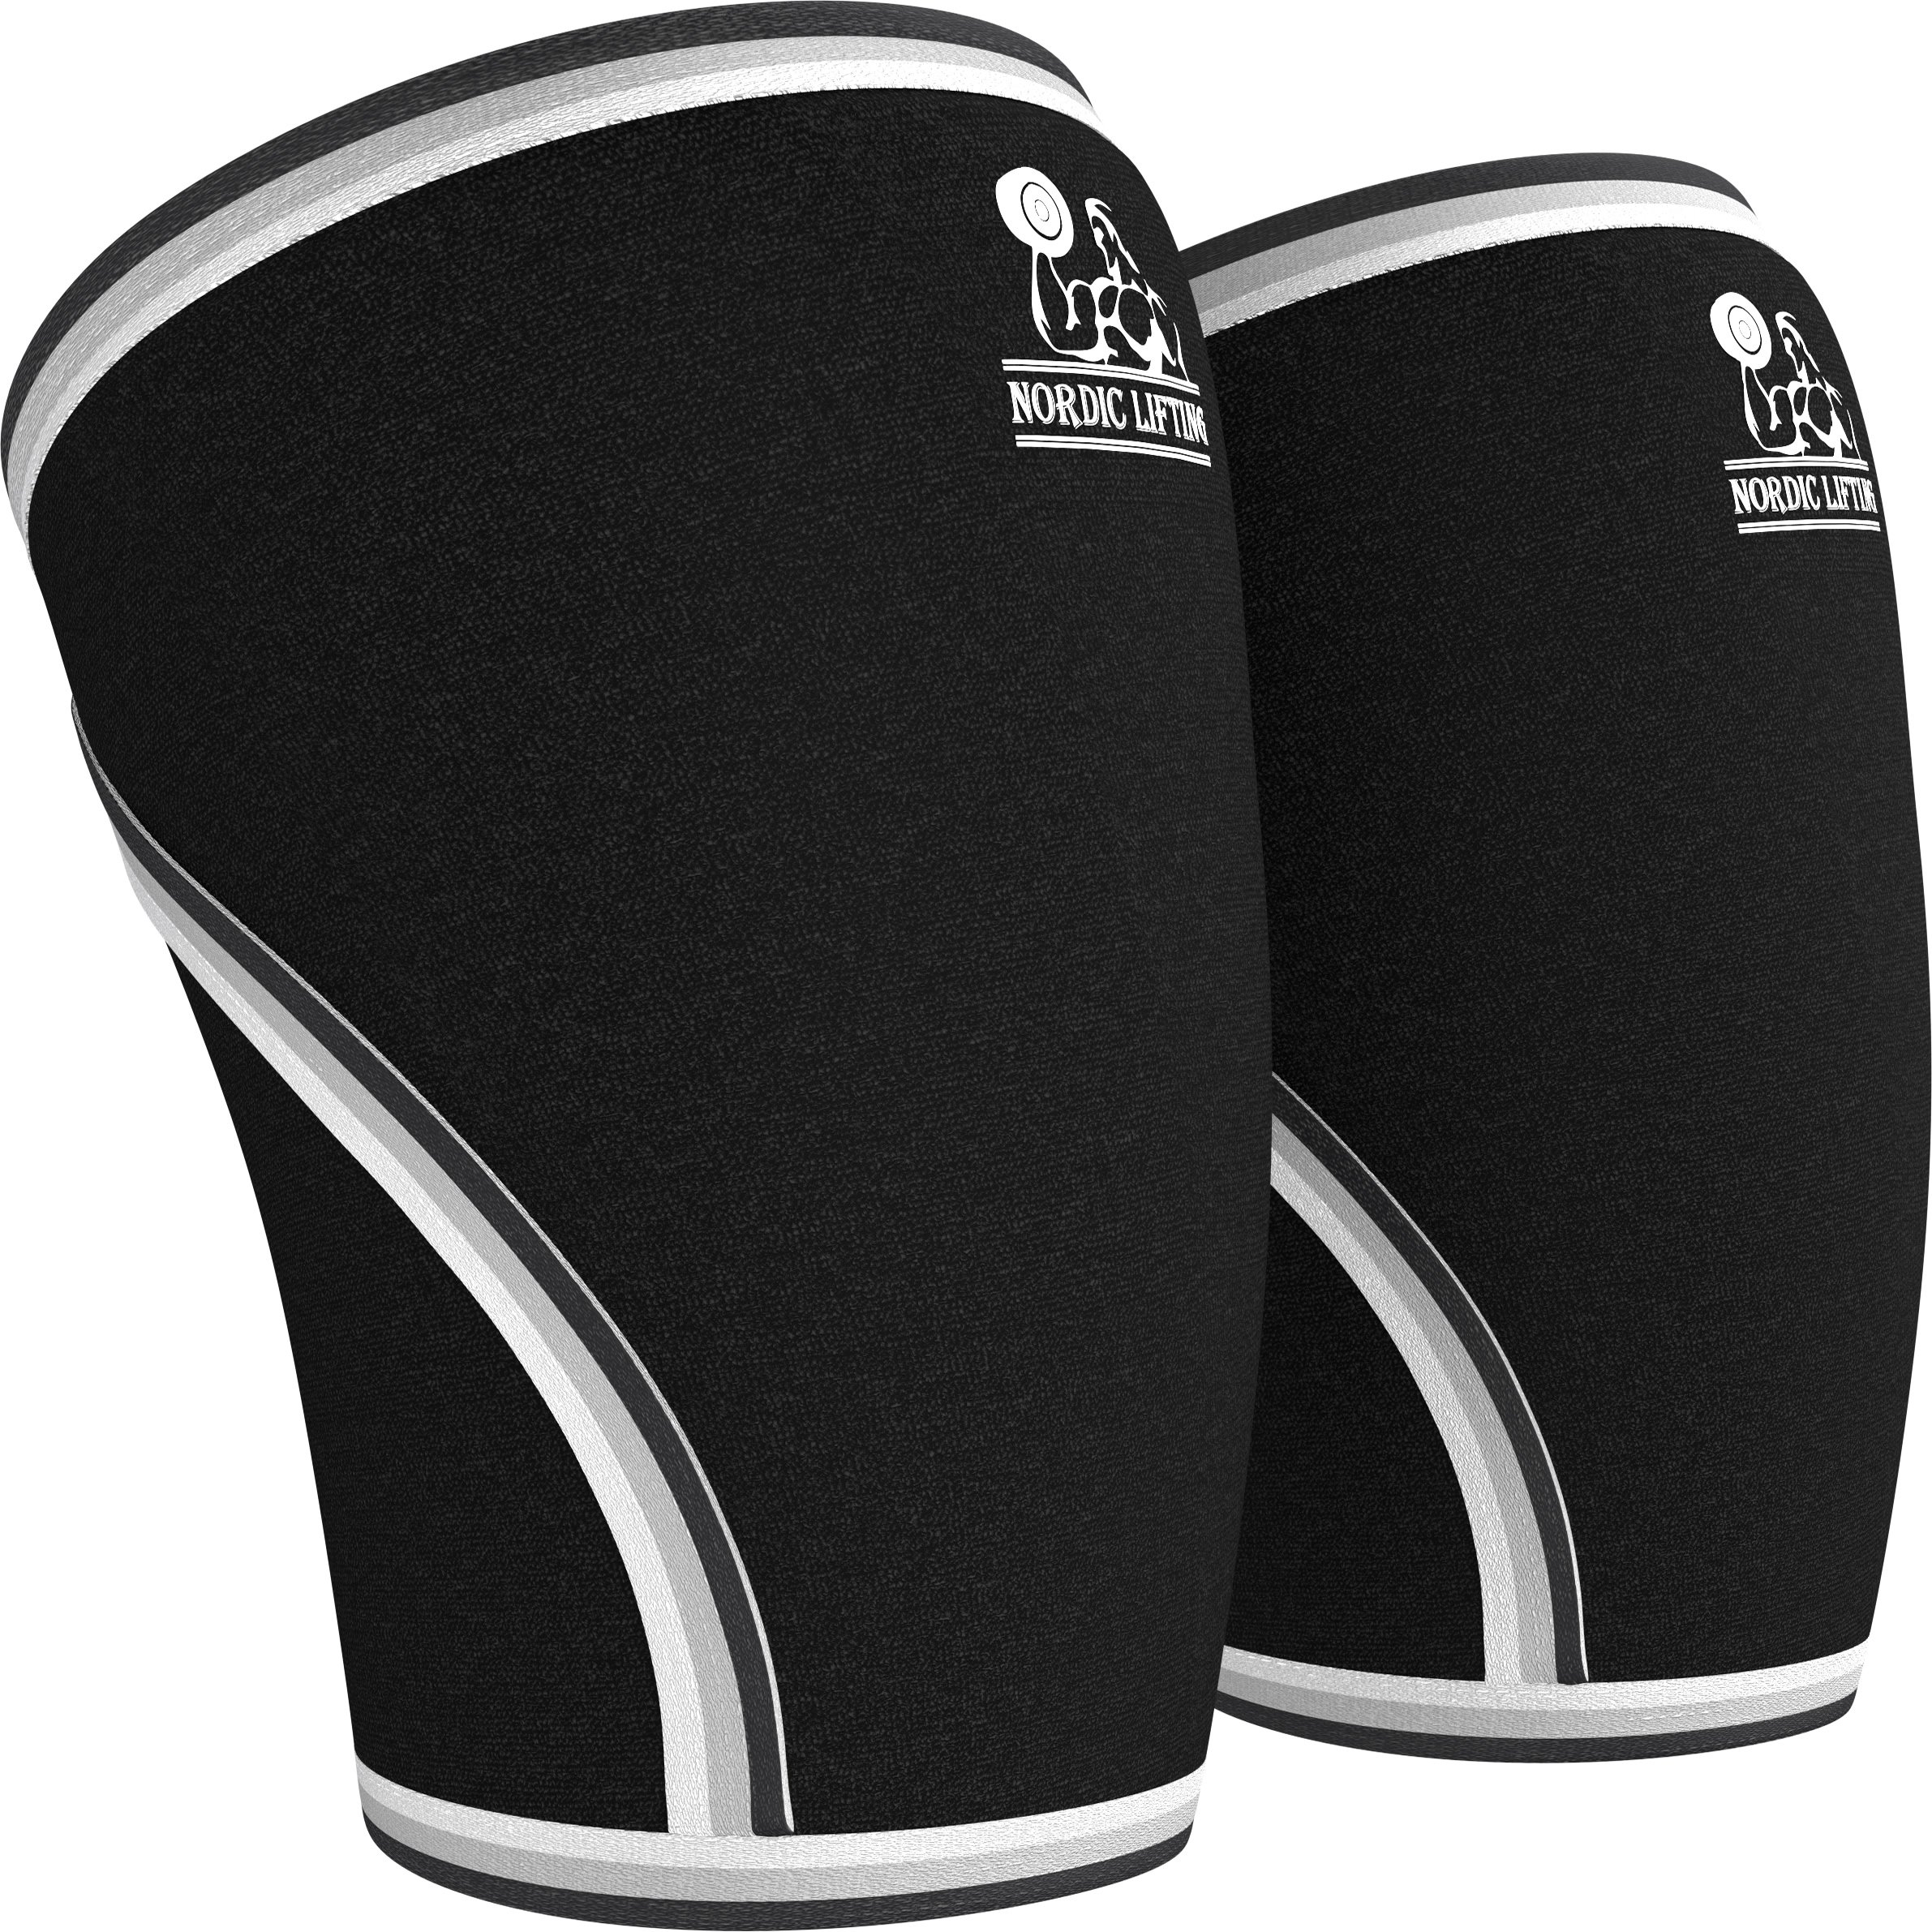 Nordic Lifting Knee Sleeves (1 Pair) Support & Compression for Weightlifting, Powerlifting & Cross Training - 7mm Neoprene Sleeve for The Best Squats - Both Women & Men (X-Small, Black) by Nordic Lifting